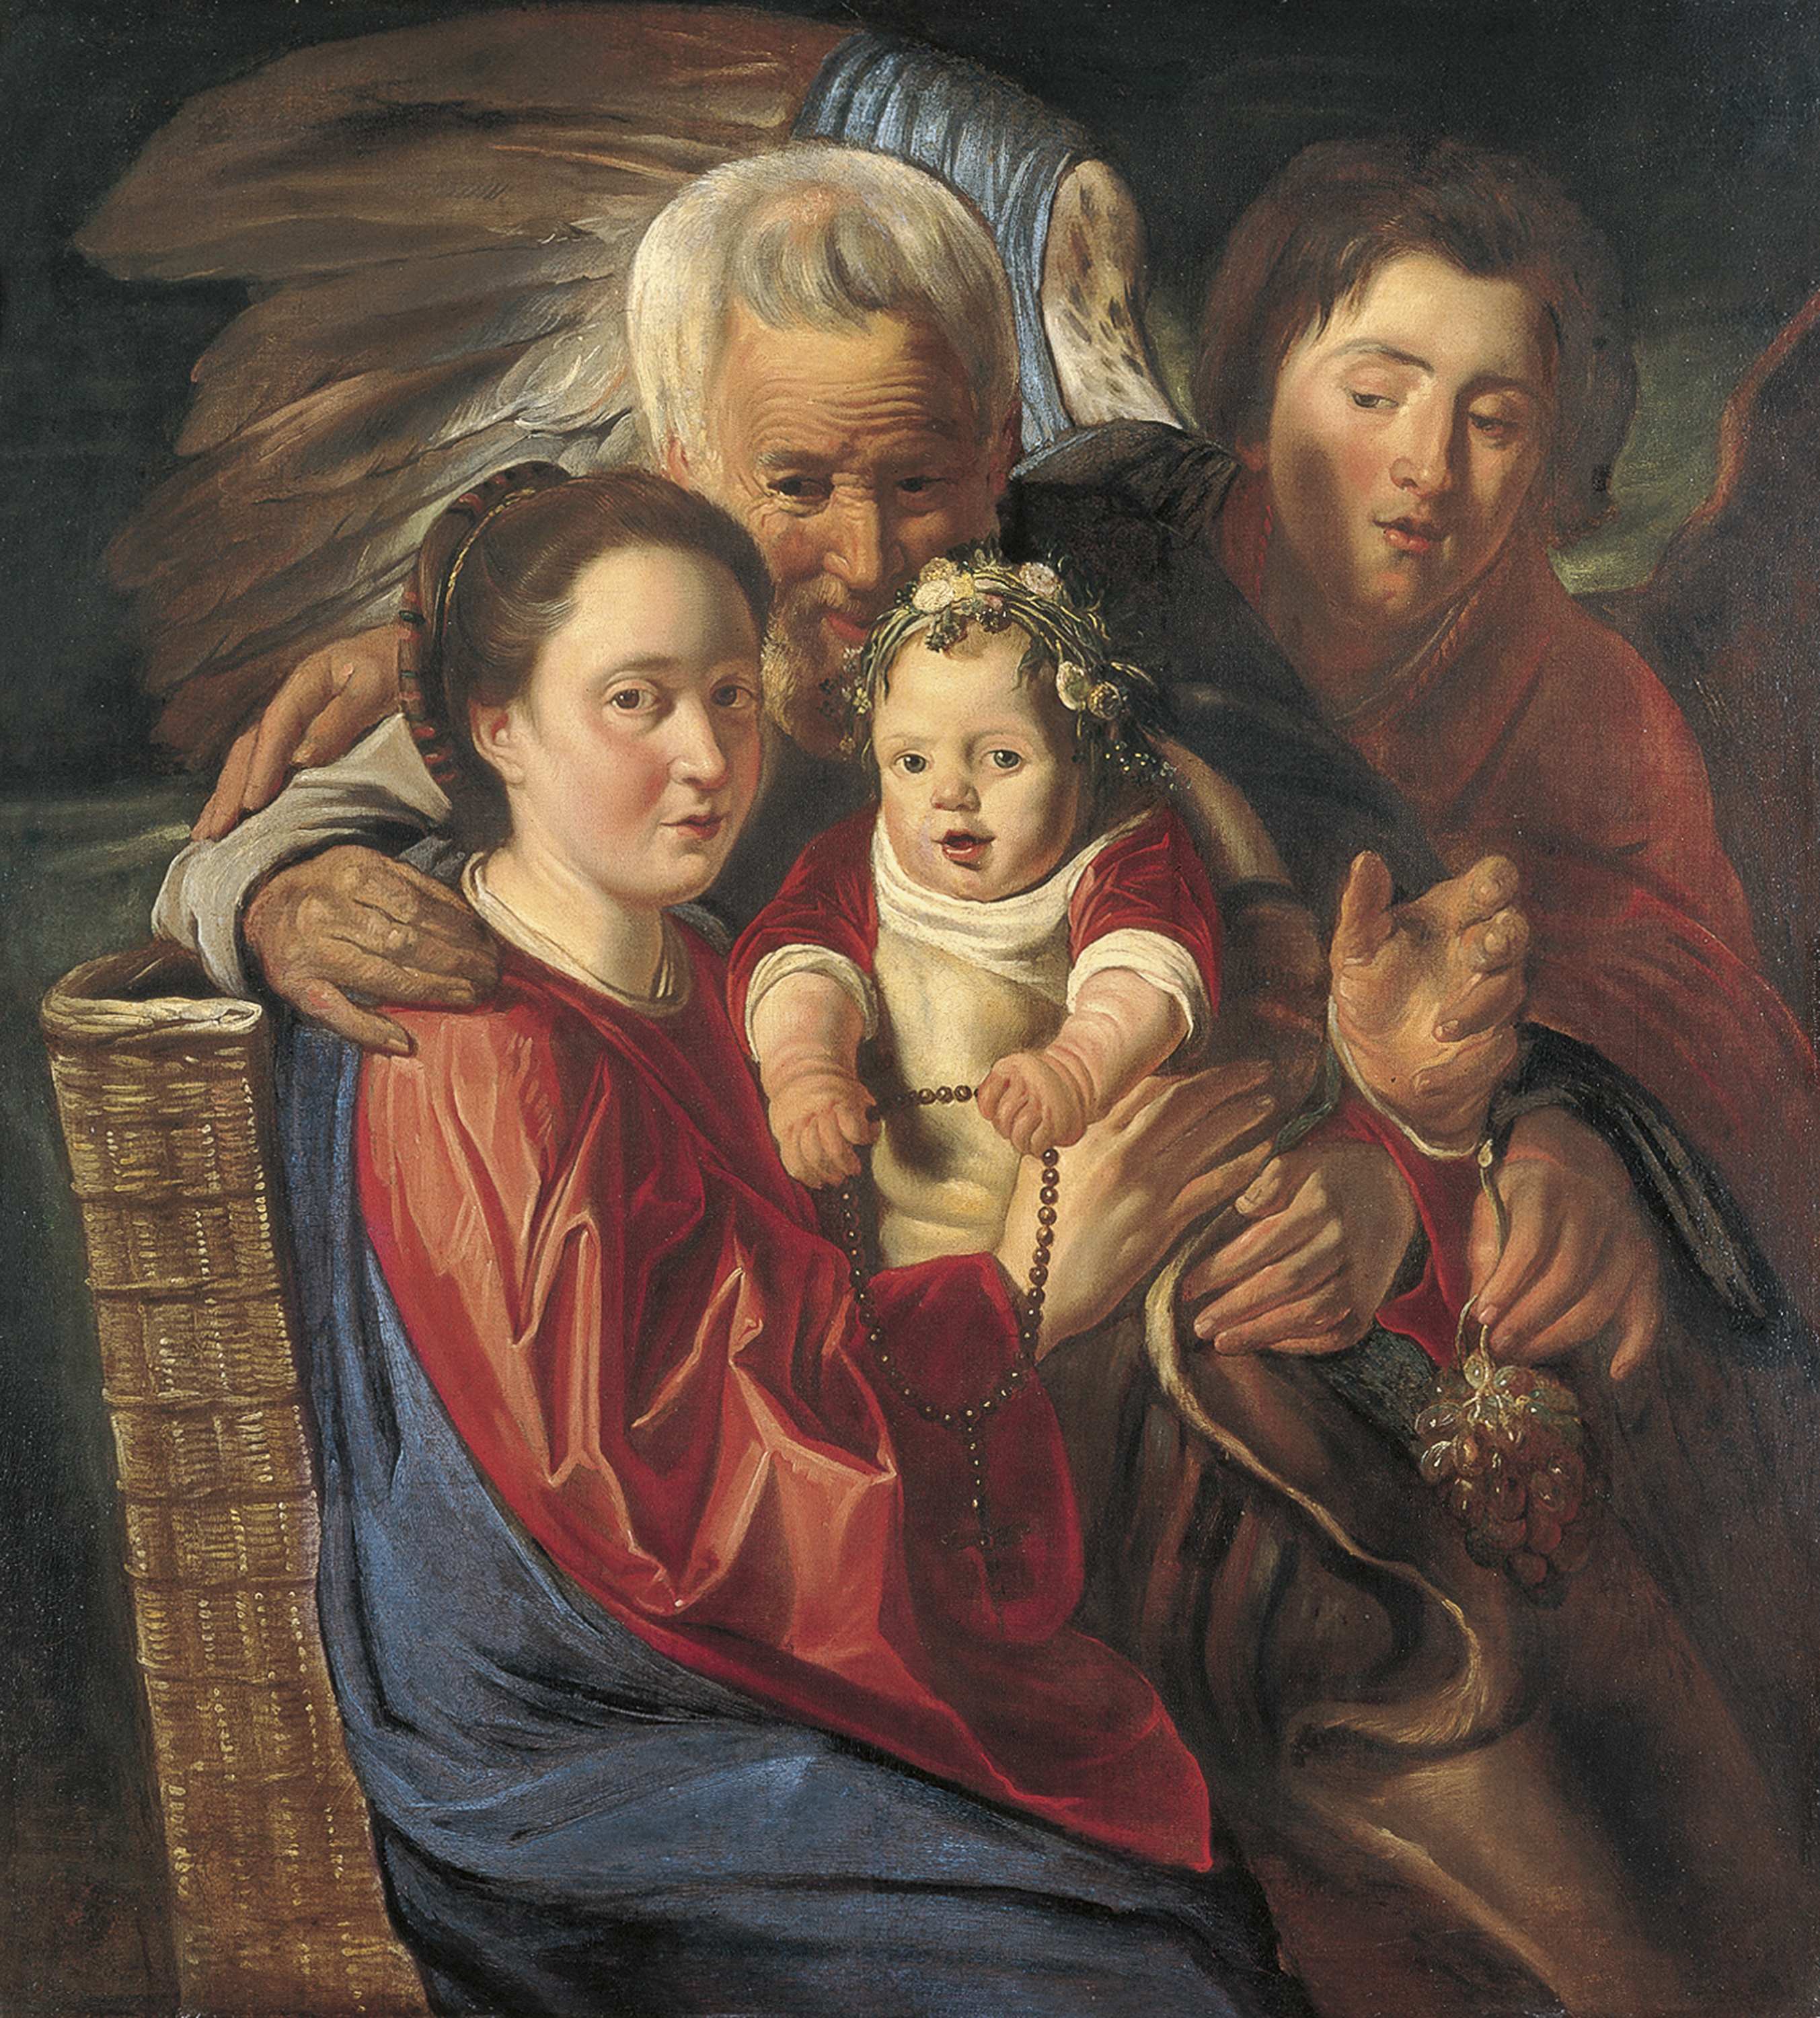 Jacob Jordaens: paintings with titles and descriptions 12